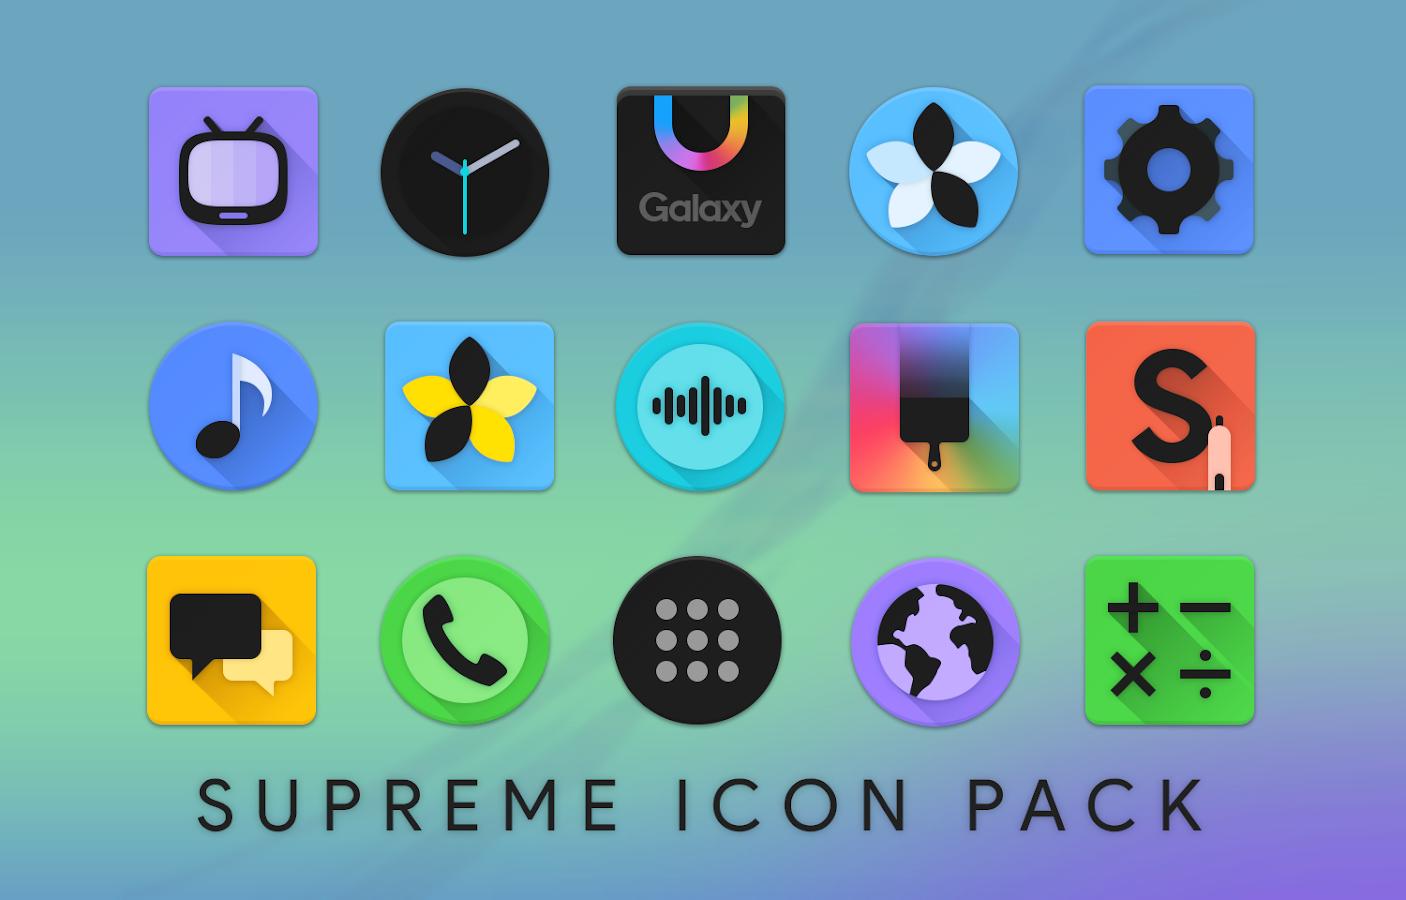 Supreme Icon Pack Screenshot 2